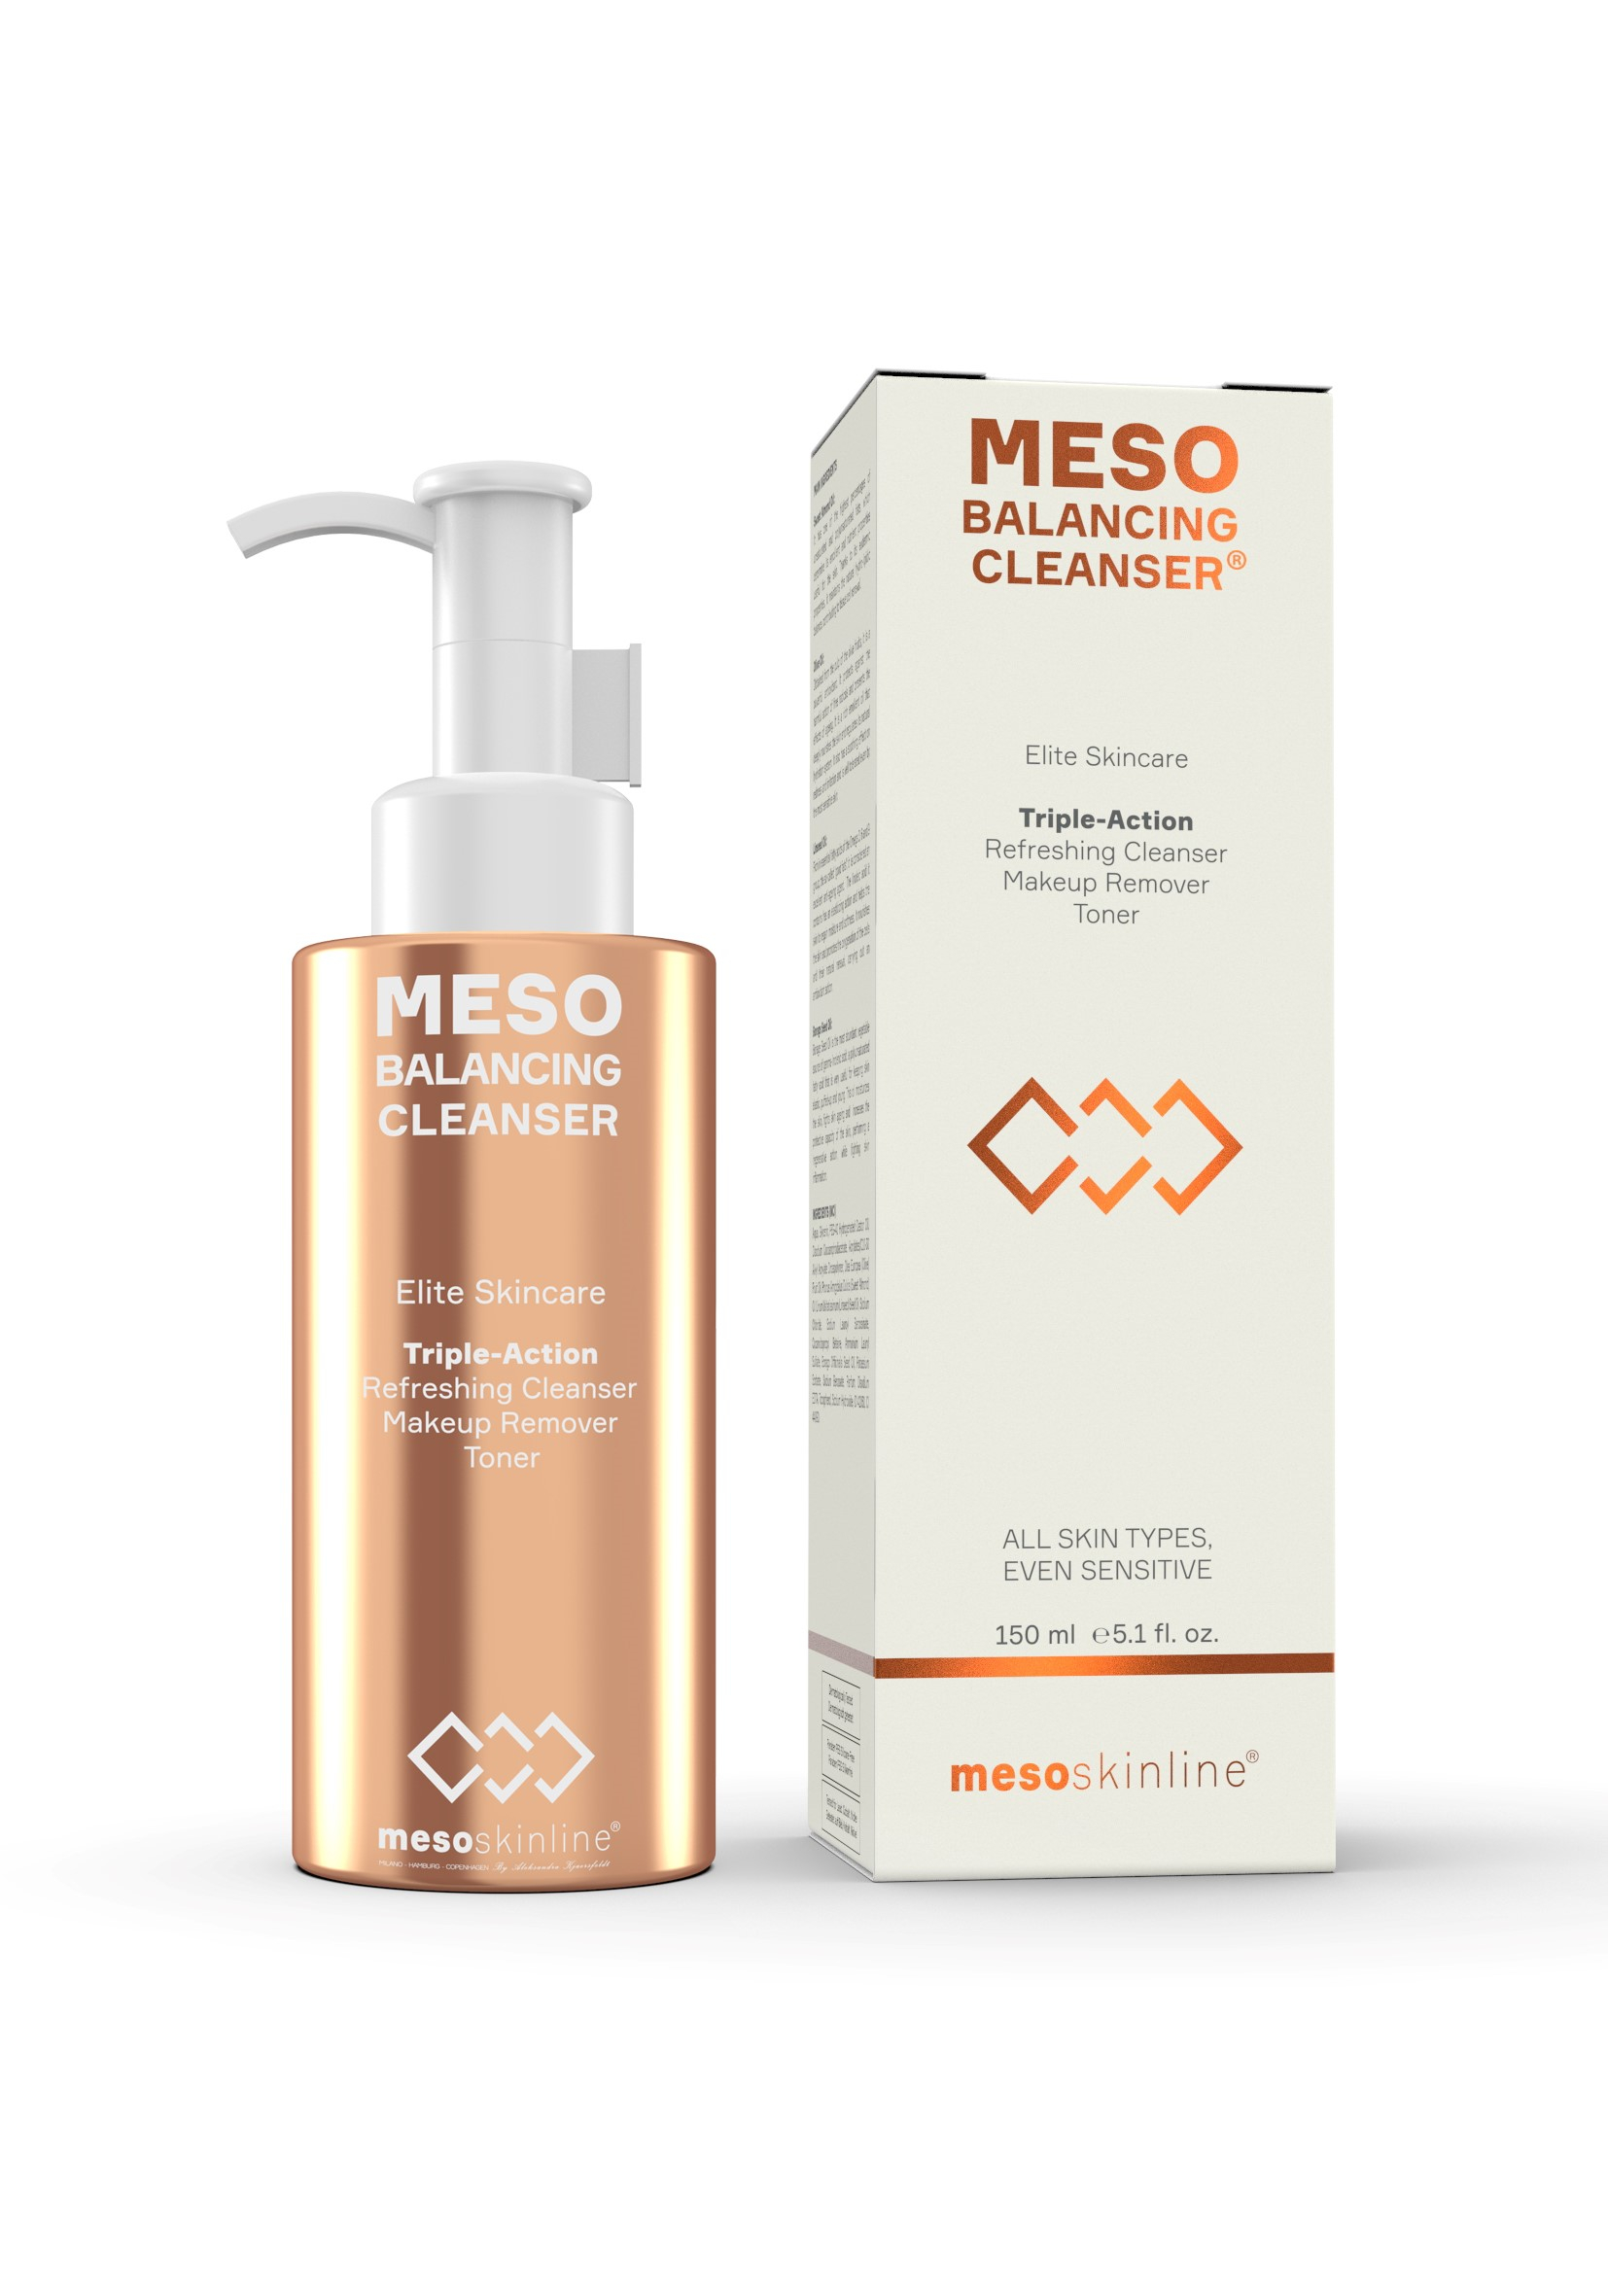 MESO BALANCING CLEANSER